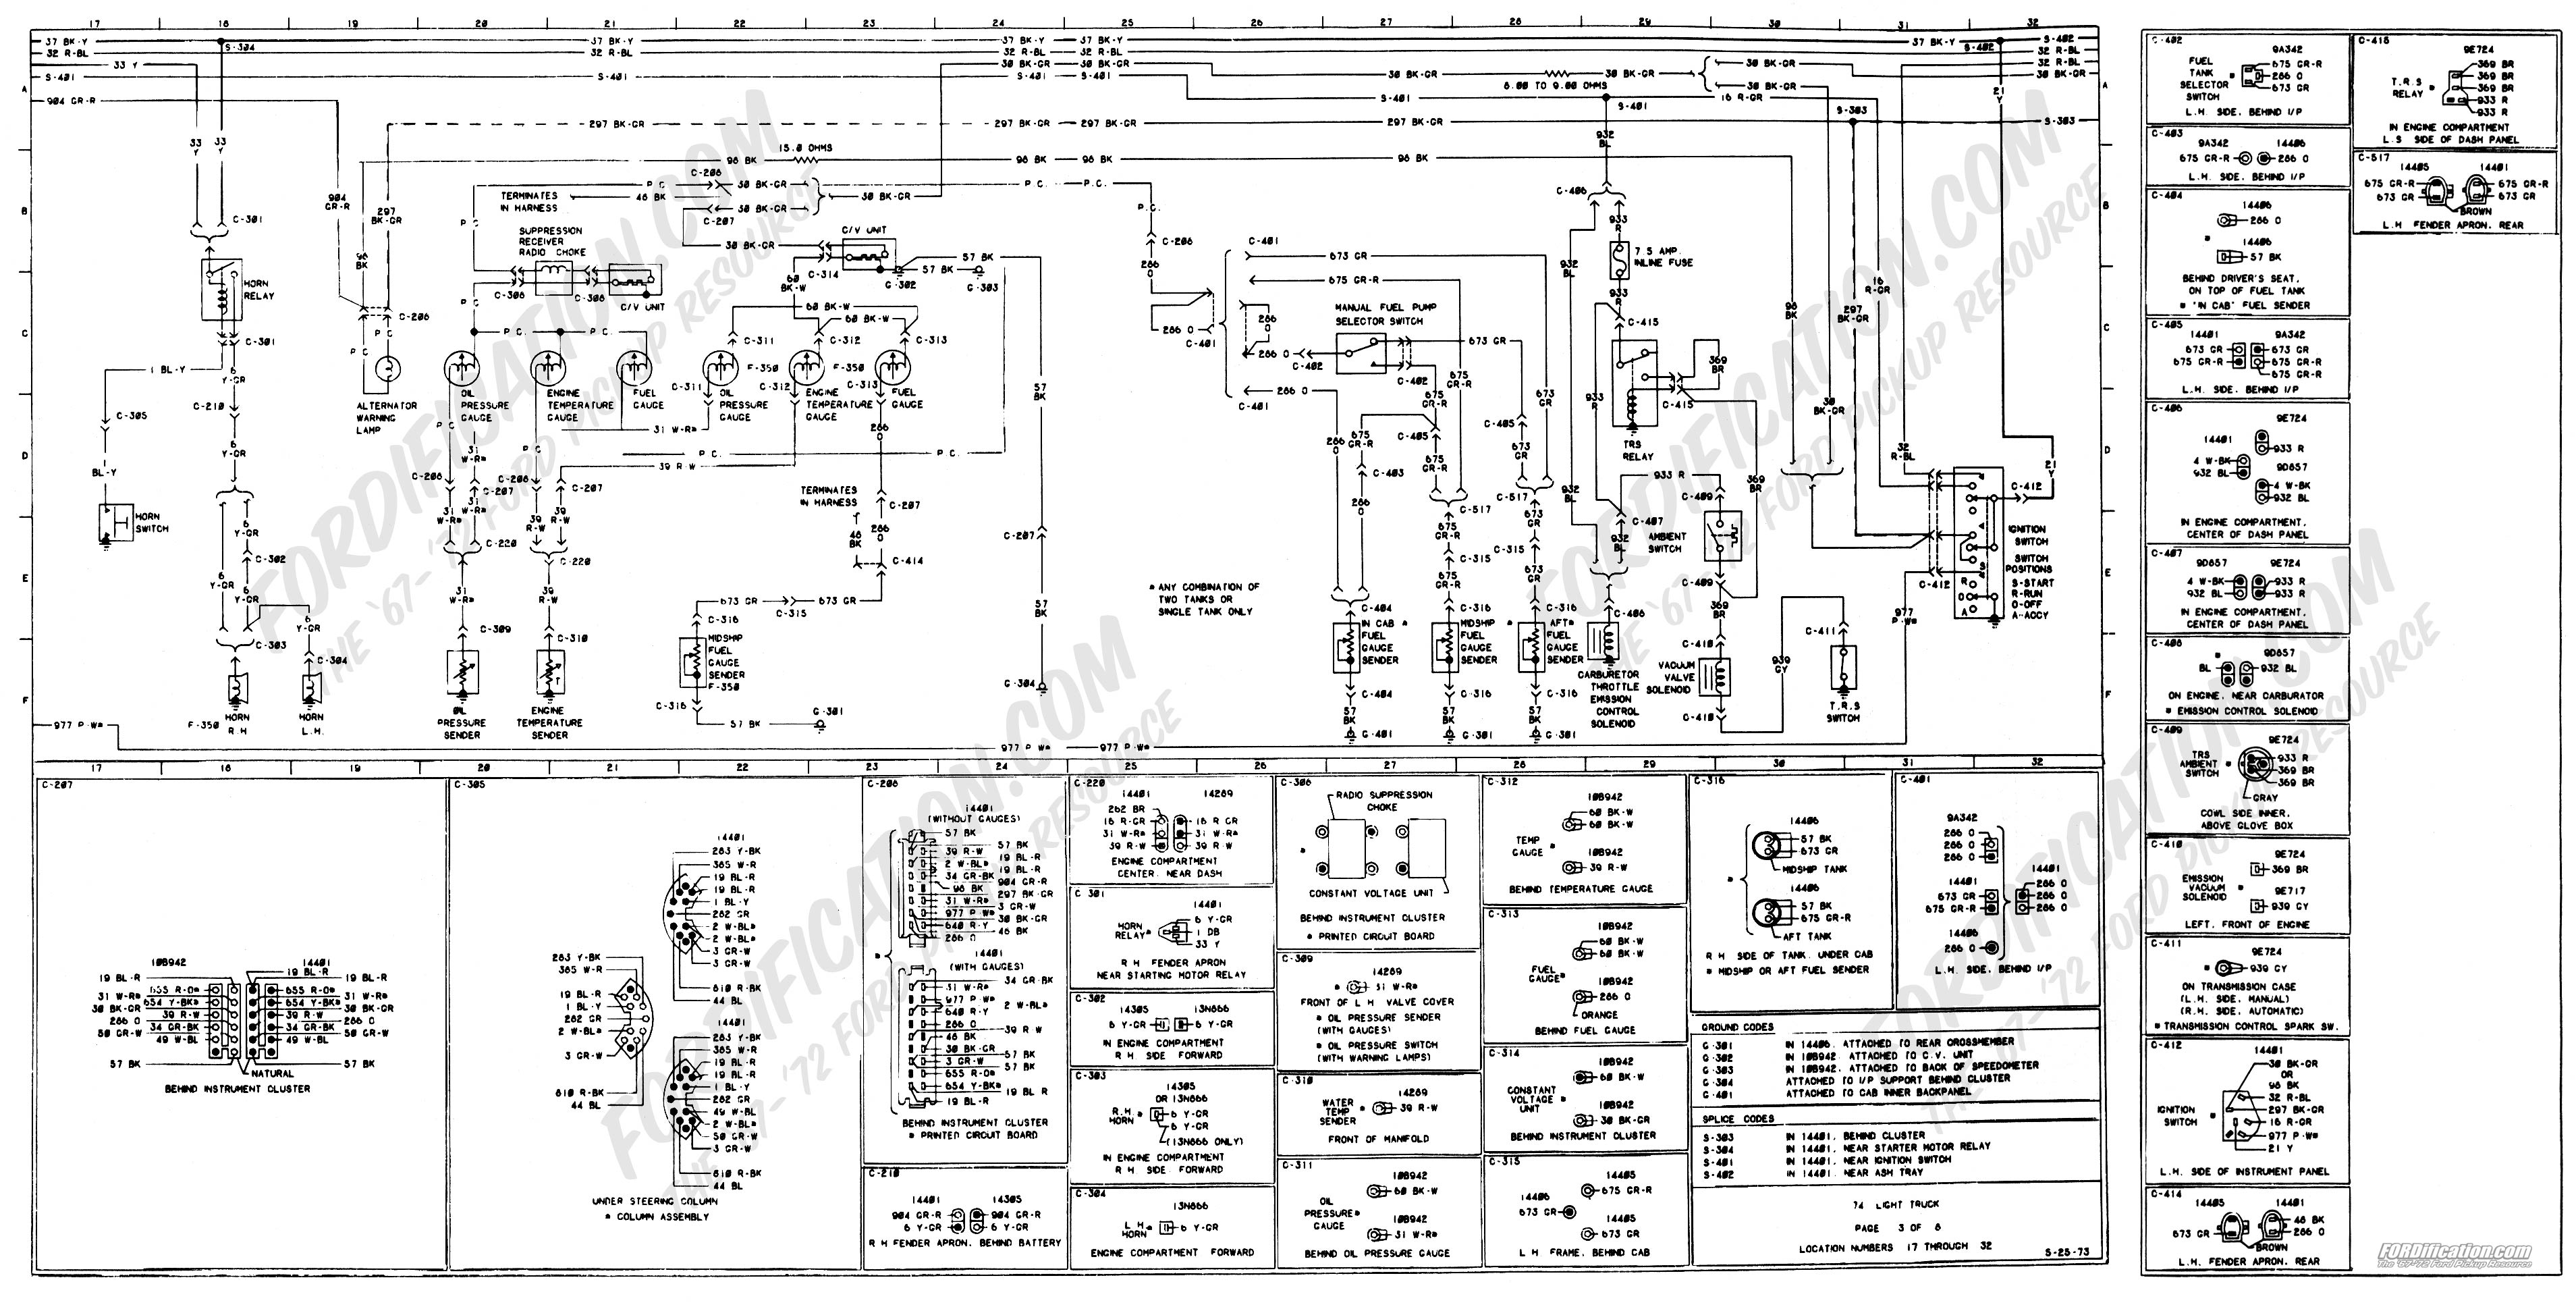 2006 E350 Fuse Box Diagram further 2006 Jetta 2 5 Fuse Diagram further 556684 Relay Diagram besides 3g Tl Fuse Box Add Circuit Questions 897055 likewise 73 Impala Wiring Diagram. on 2000 vw beetle fuse panel diagram